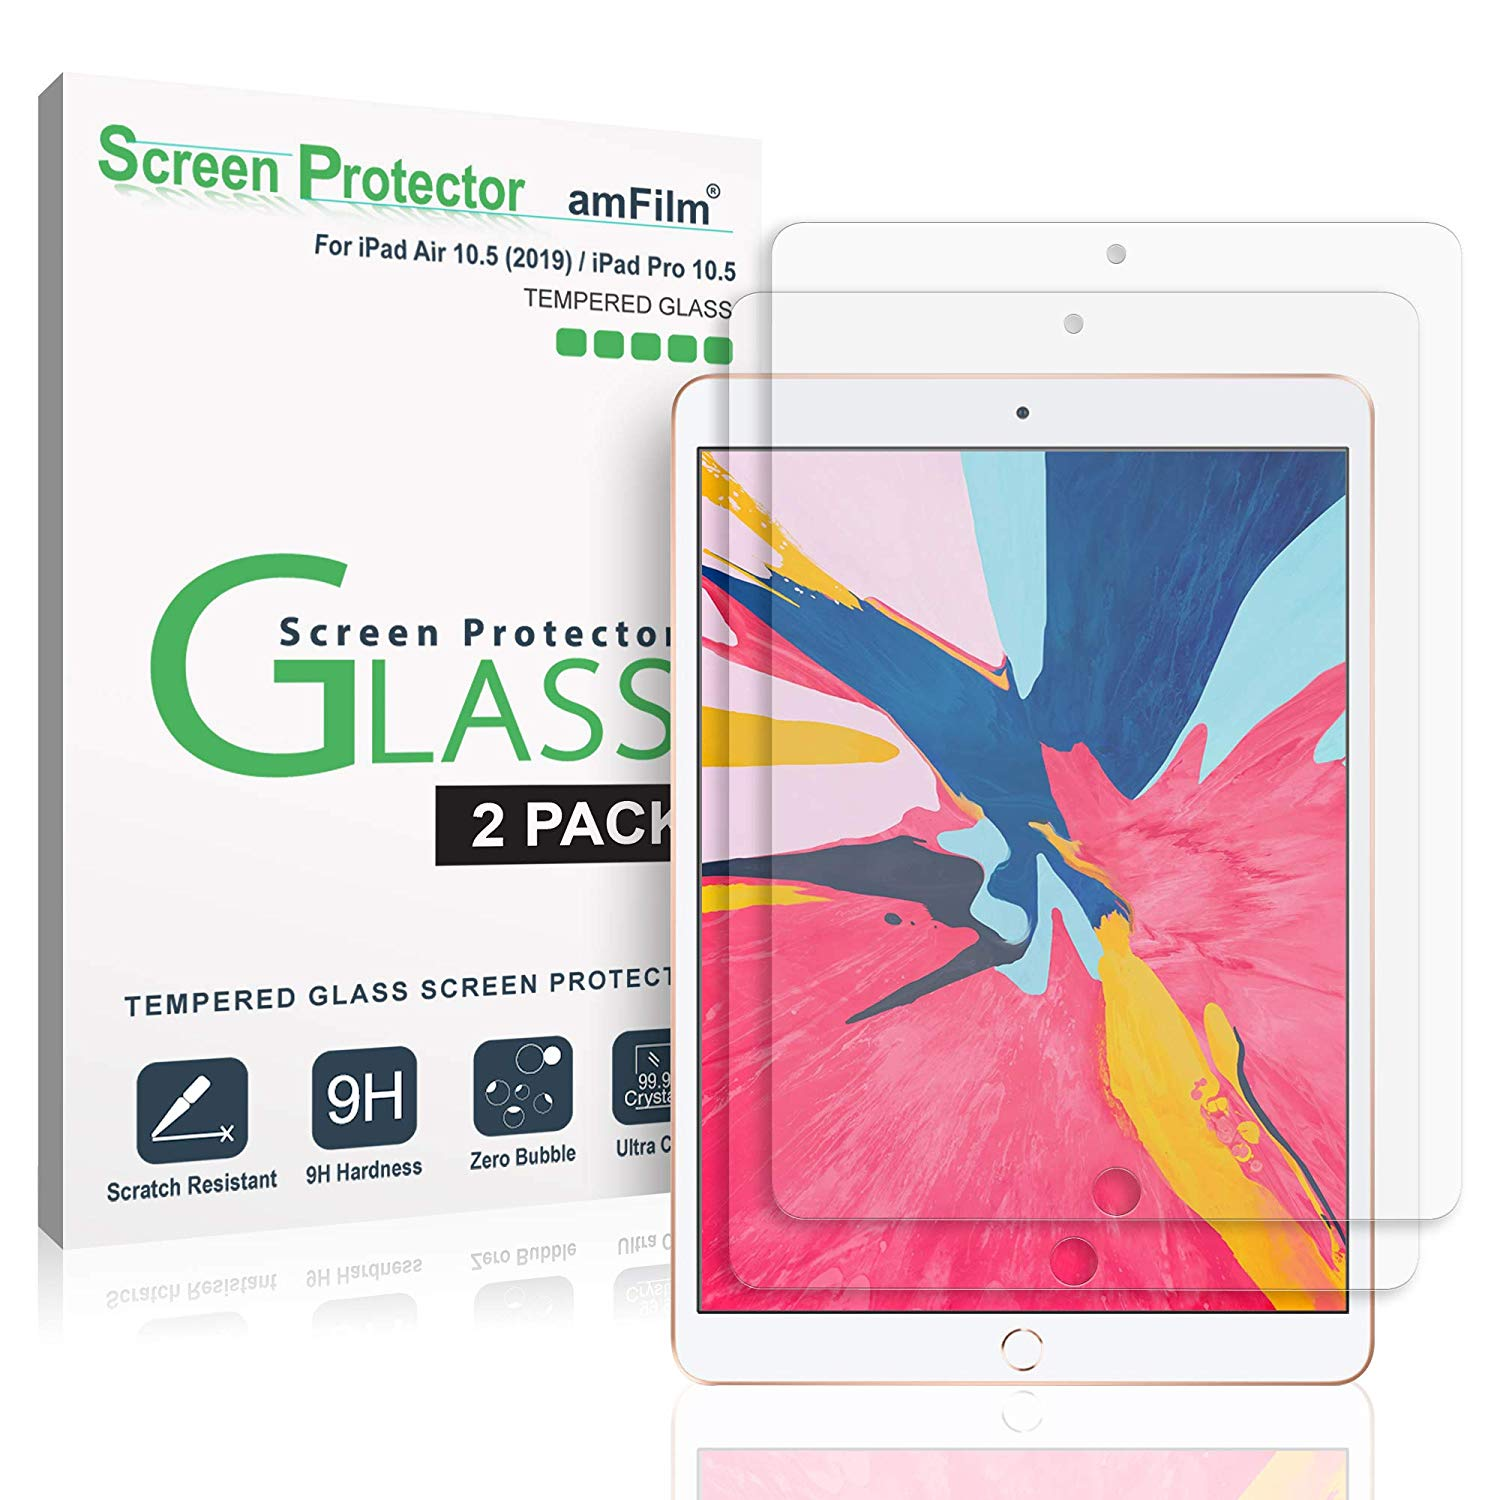 "Glass Screen Protector for iPad Air 3 (2019) 10.5"", iPad Pro 10.5"" (2PK)"